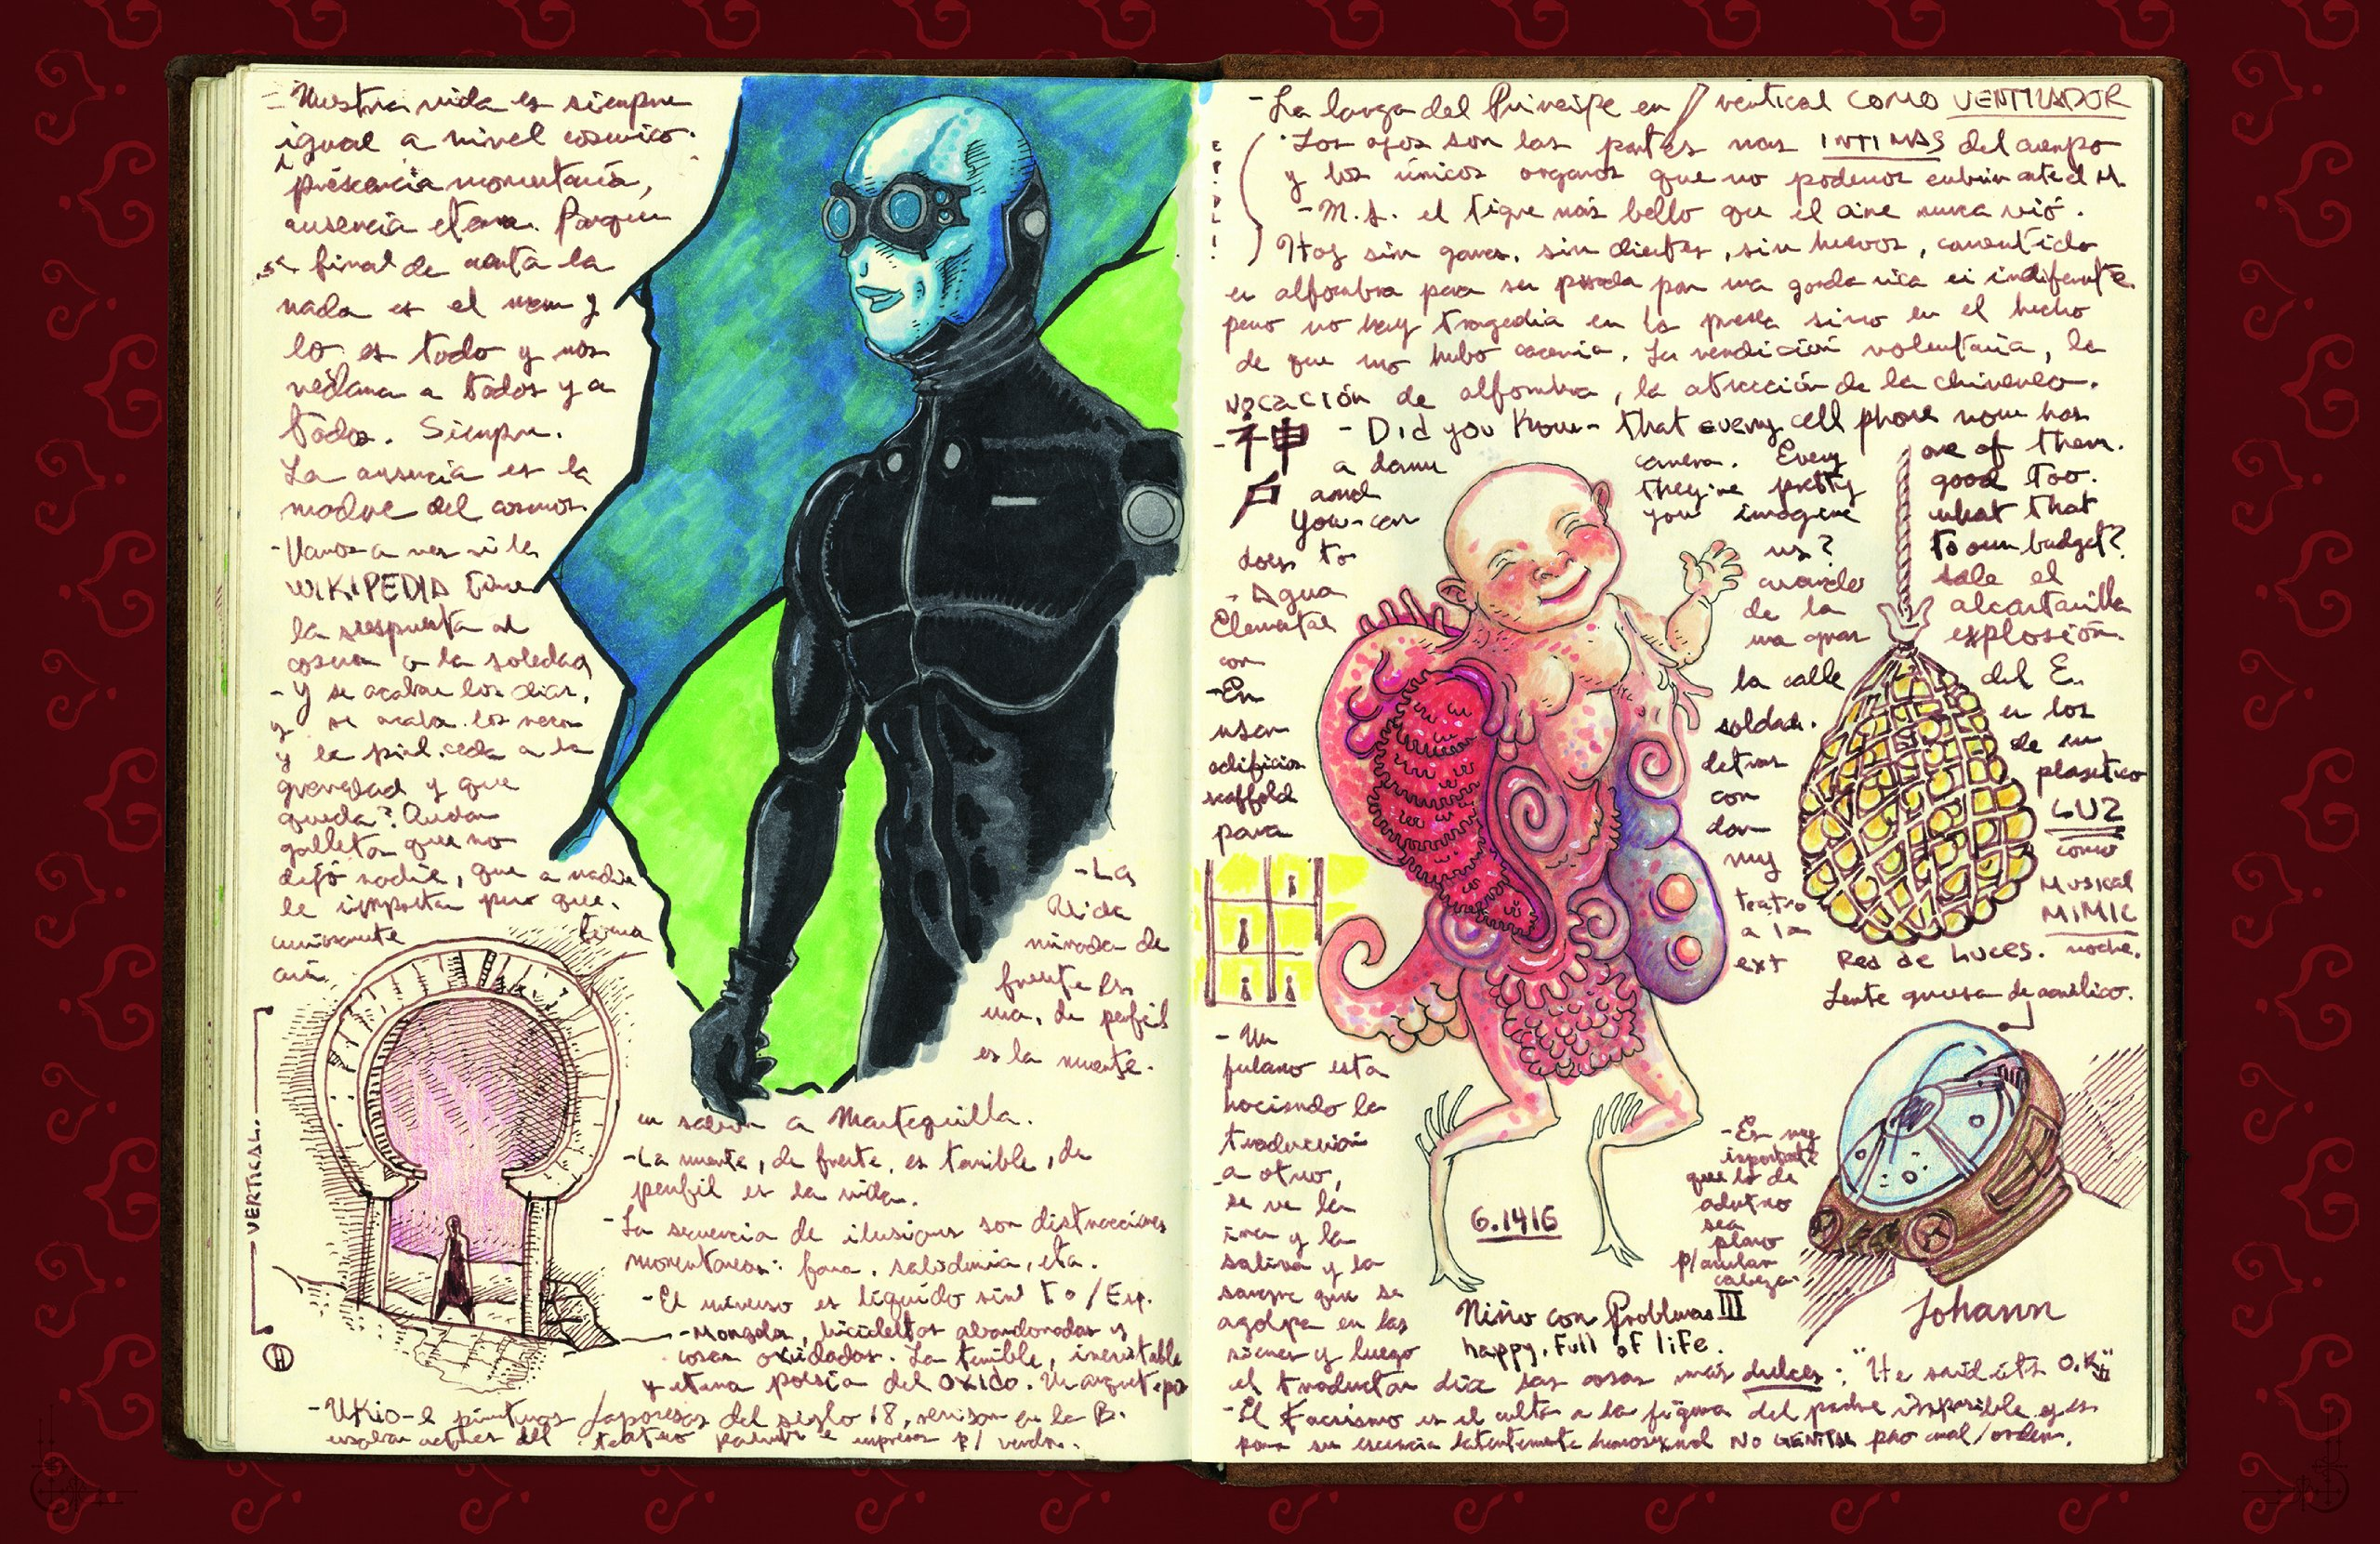 One of the pages of a notebook of Guillermo del Toro